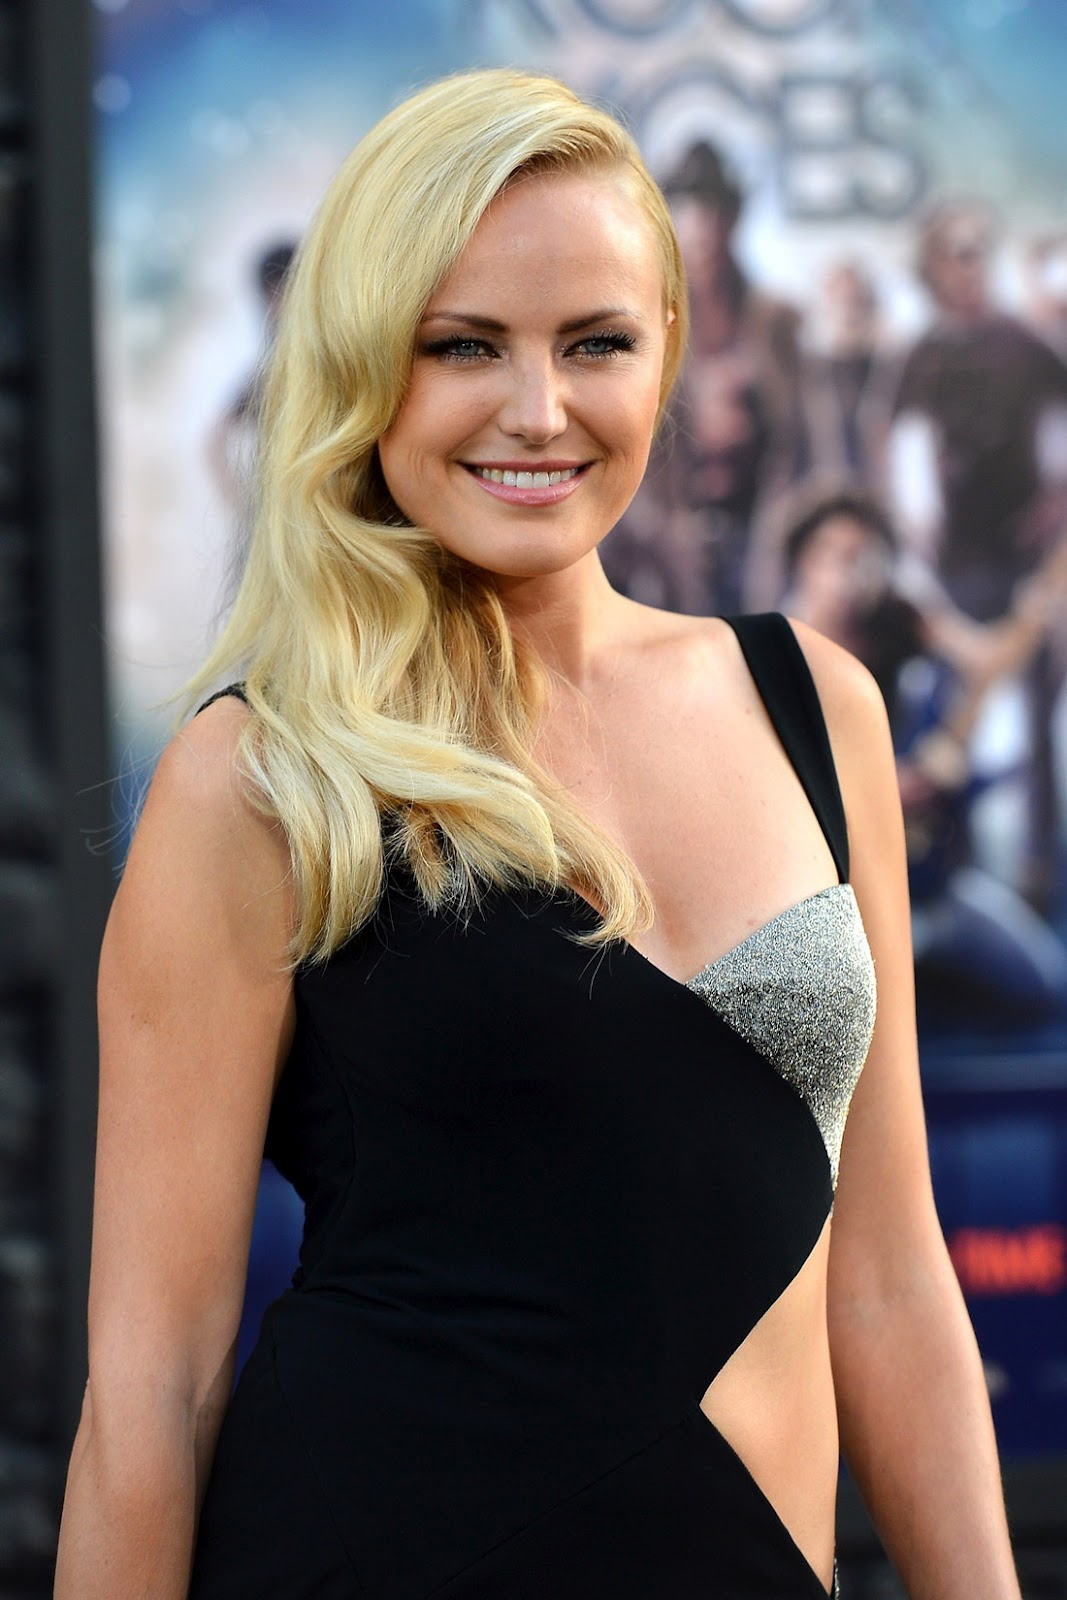 The Red Carpet: Malin Akerman in a Sexy, High Slit Dress ... малин акерман